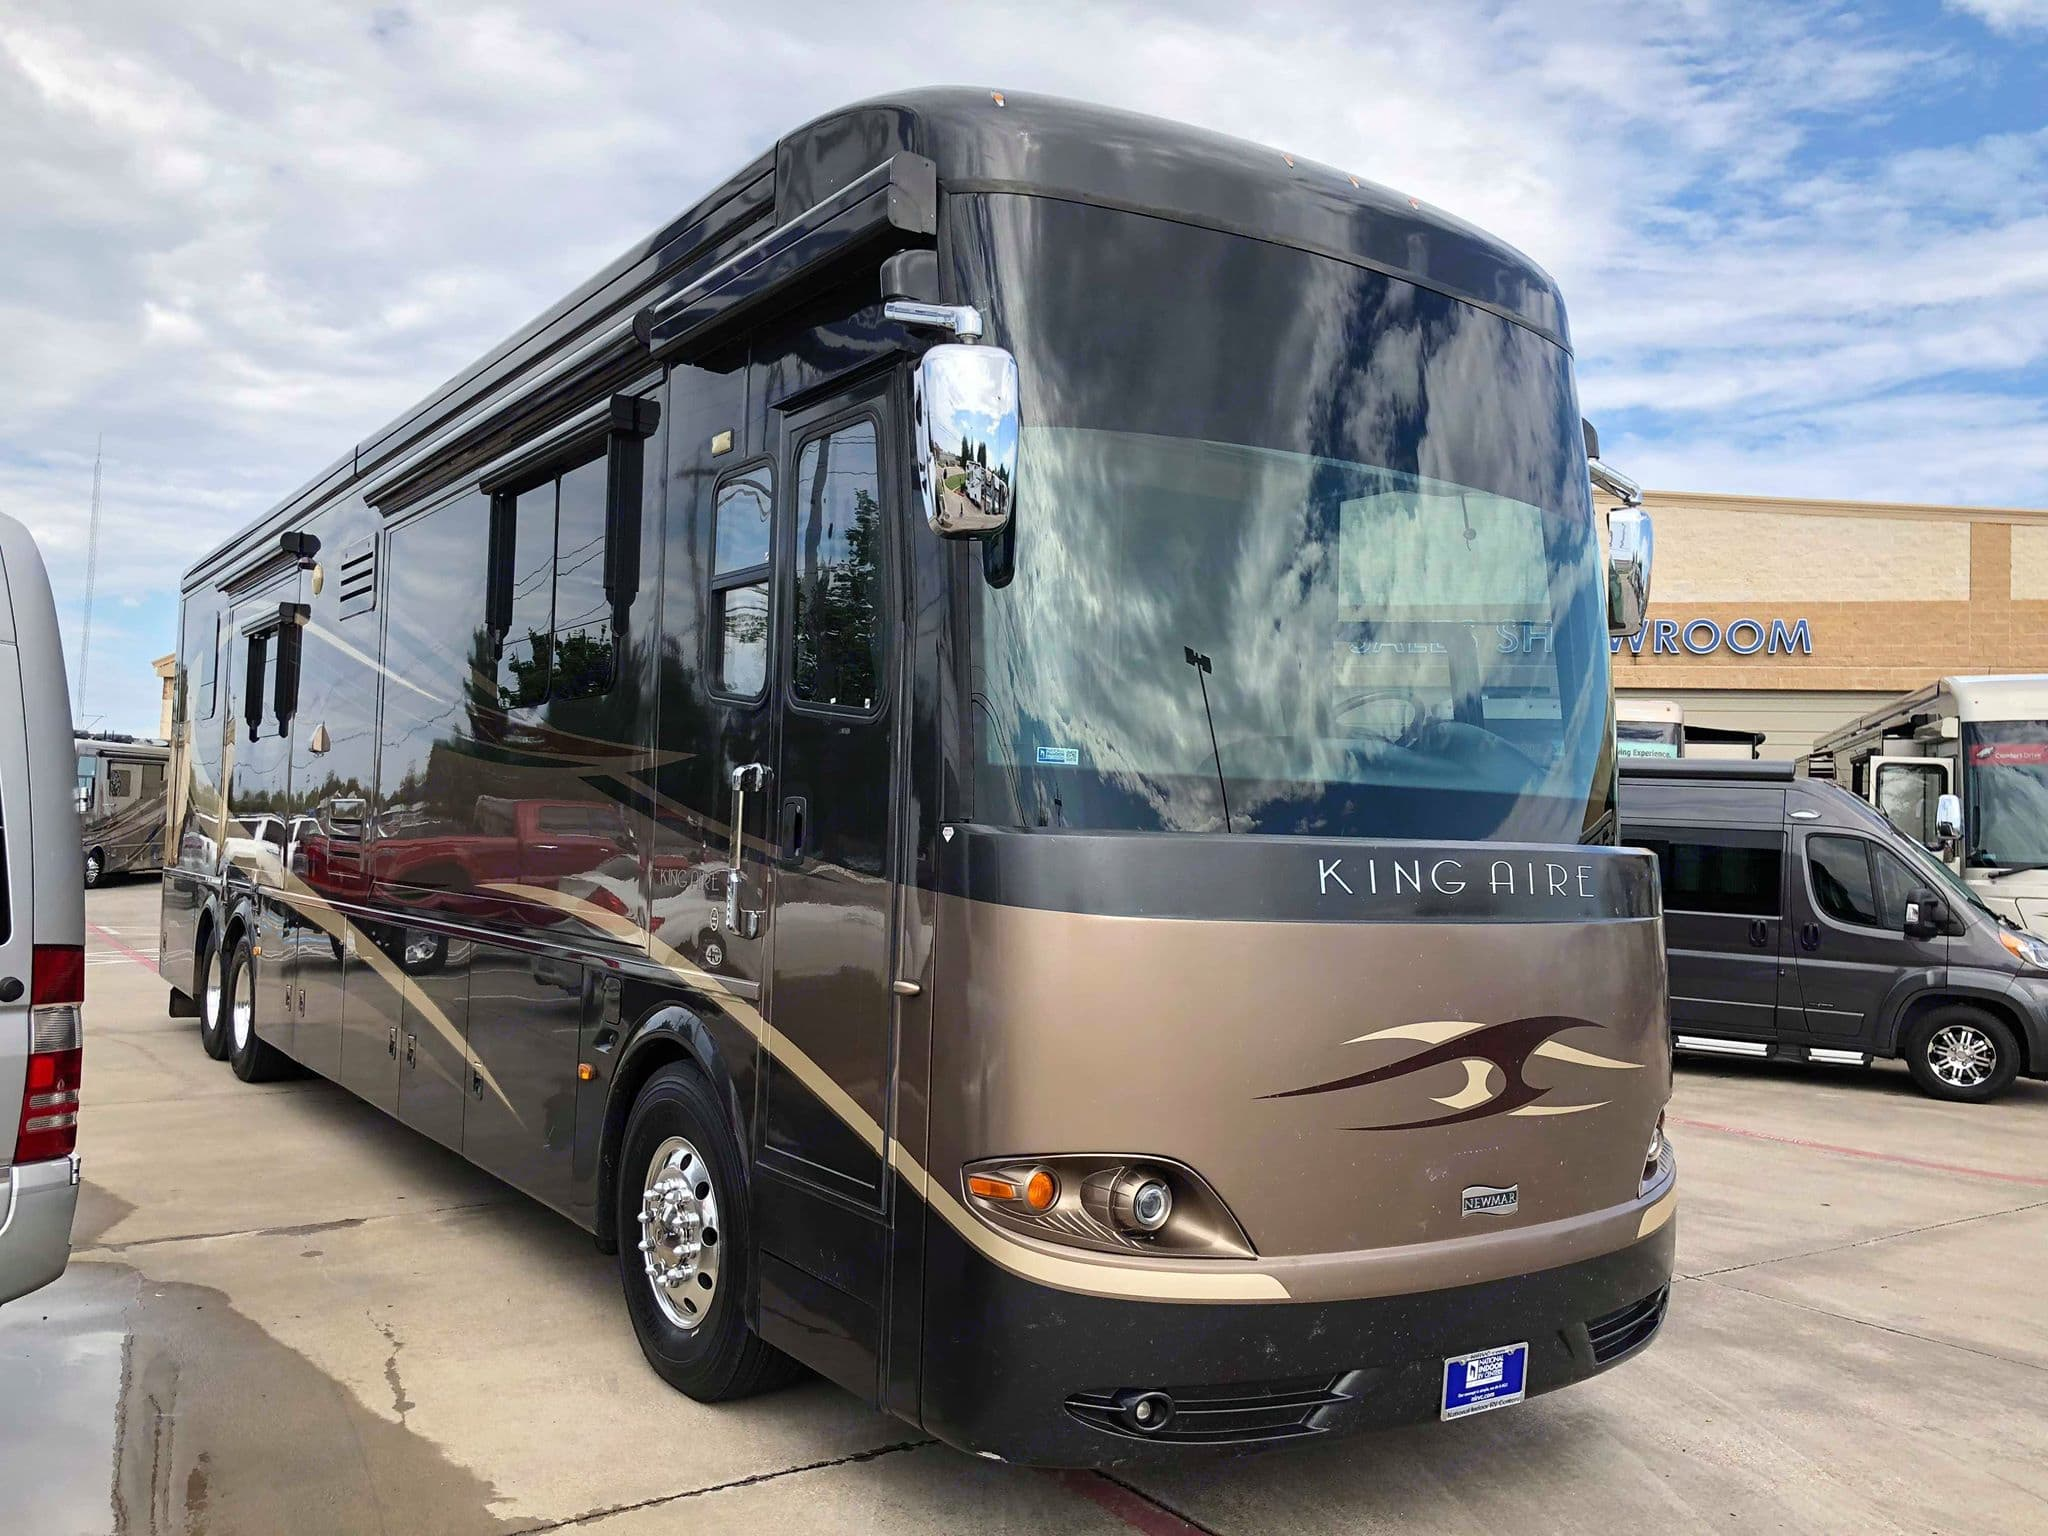 Two integrated awnings provide shade the full length of the coach, separate door awning keeps you dry as you enter the coach.. Newmar King Aire - 4561 - bath + 1/2 bath 2008